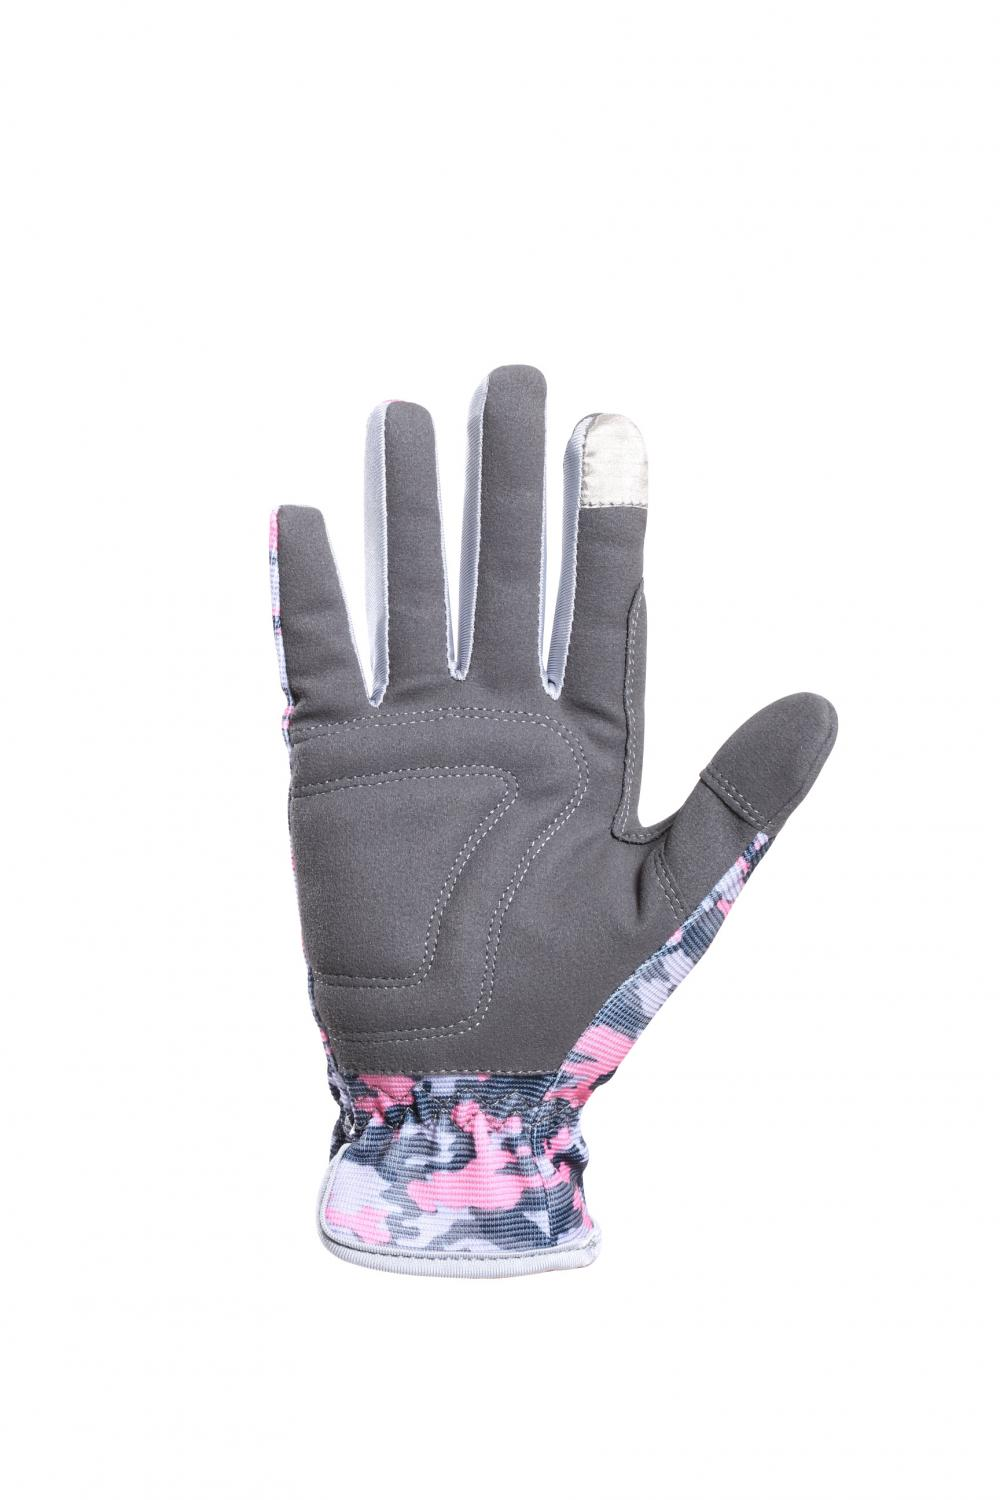 Waterproof Winter Ski Warm Gloves